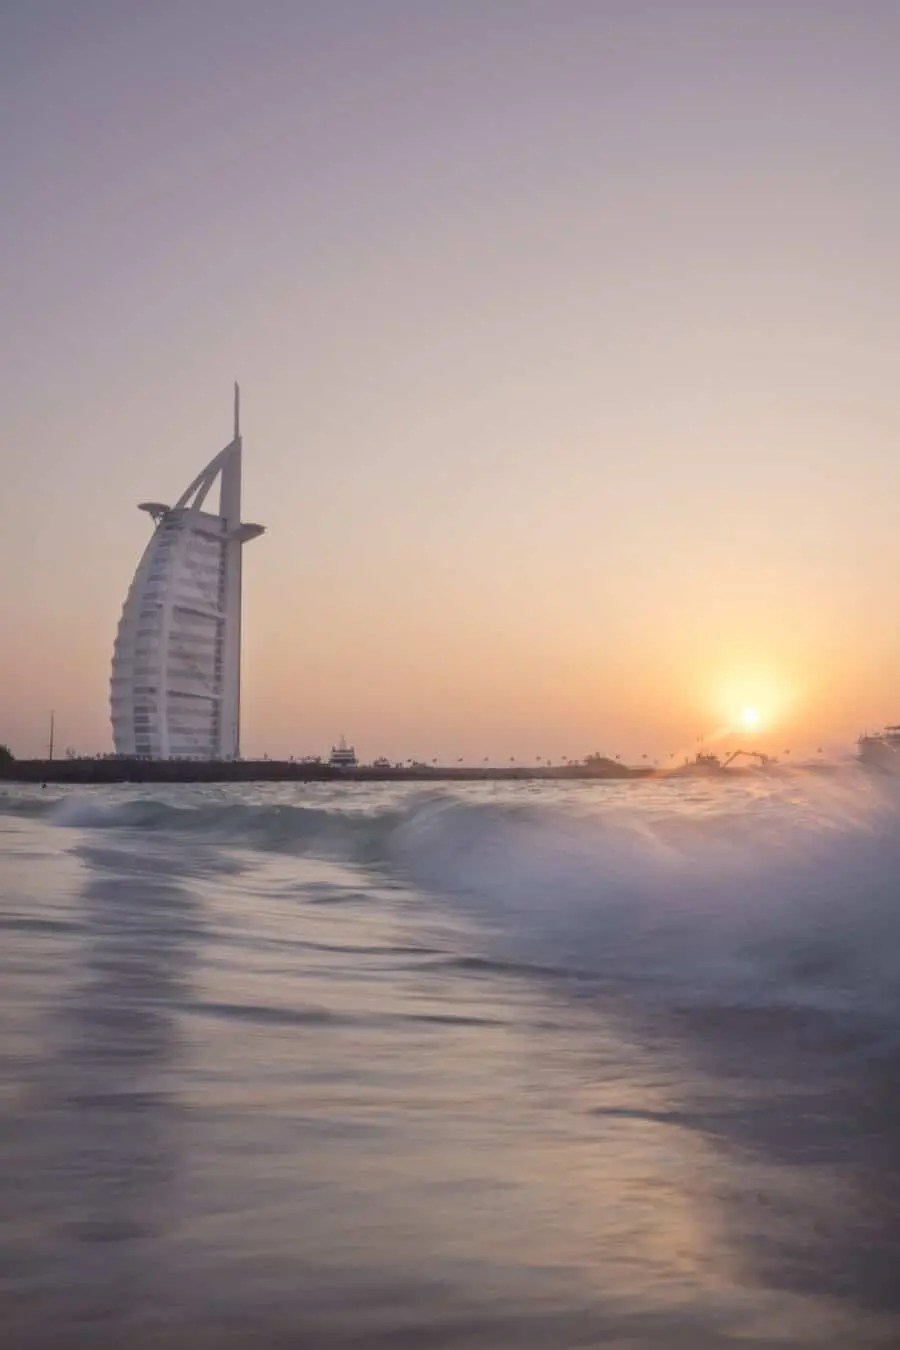 Dubai Photography Locations - A guide to the best places to take photos in Dubai by The Wandering Lens